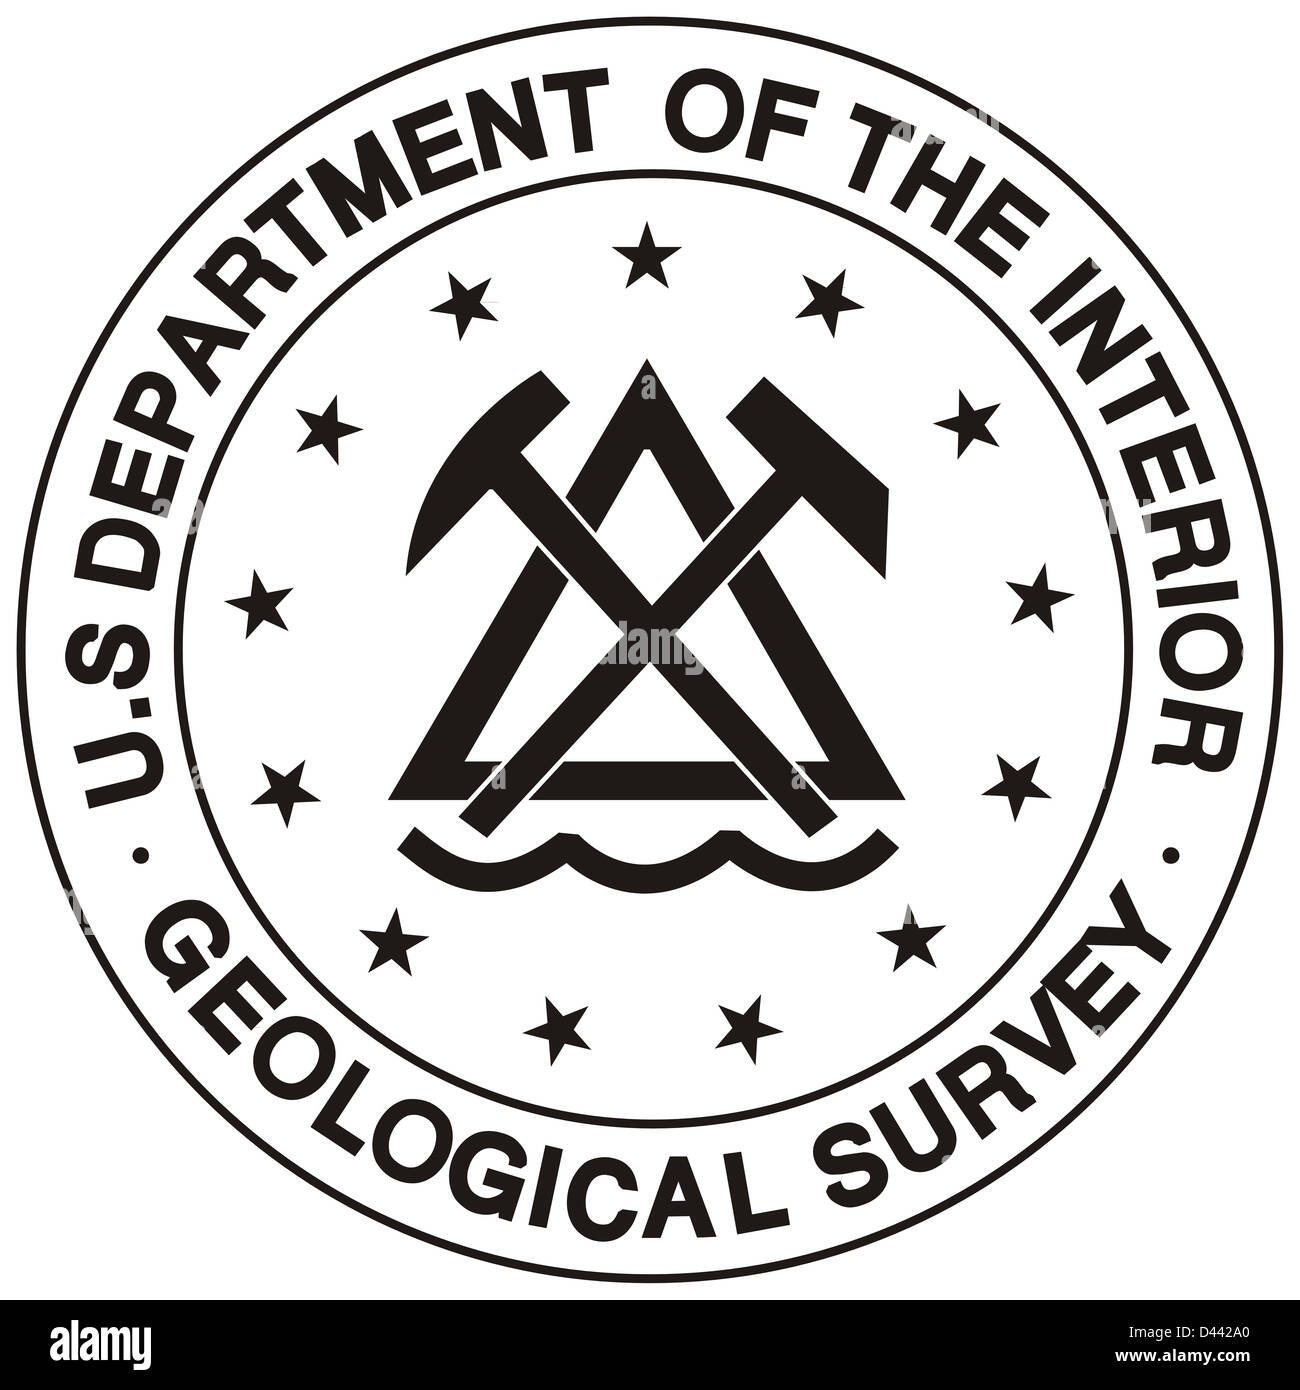 United States Department Of The Interior Geological Survey Seal